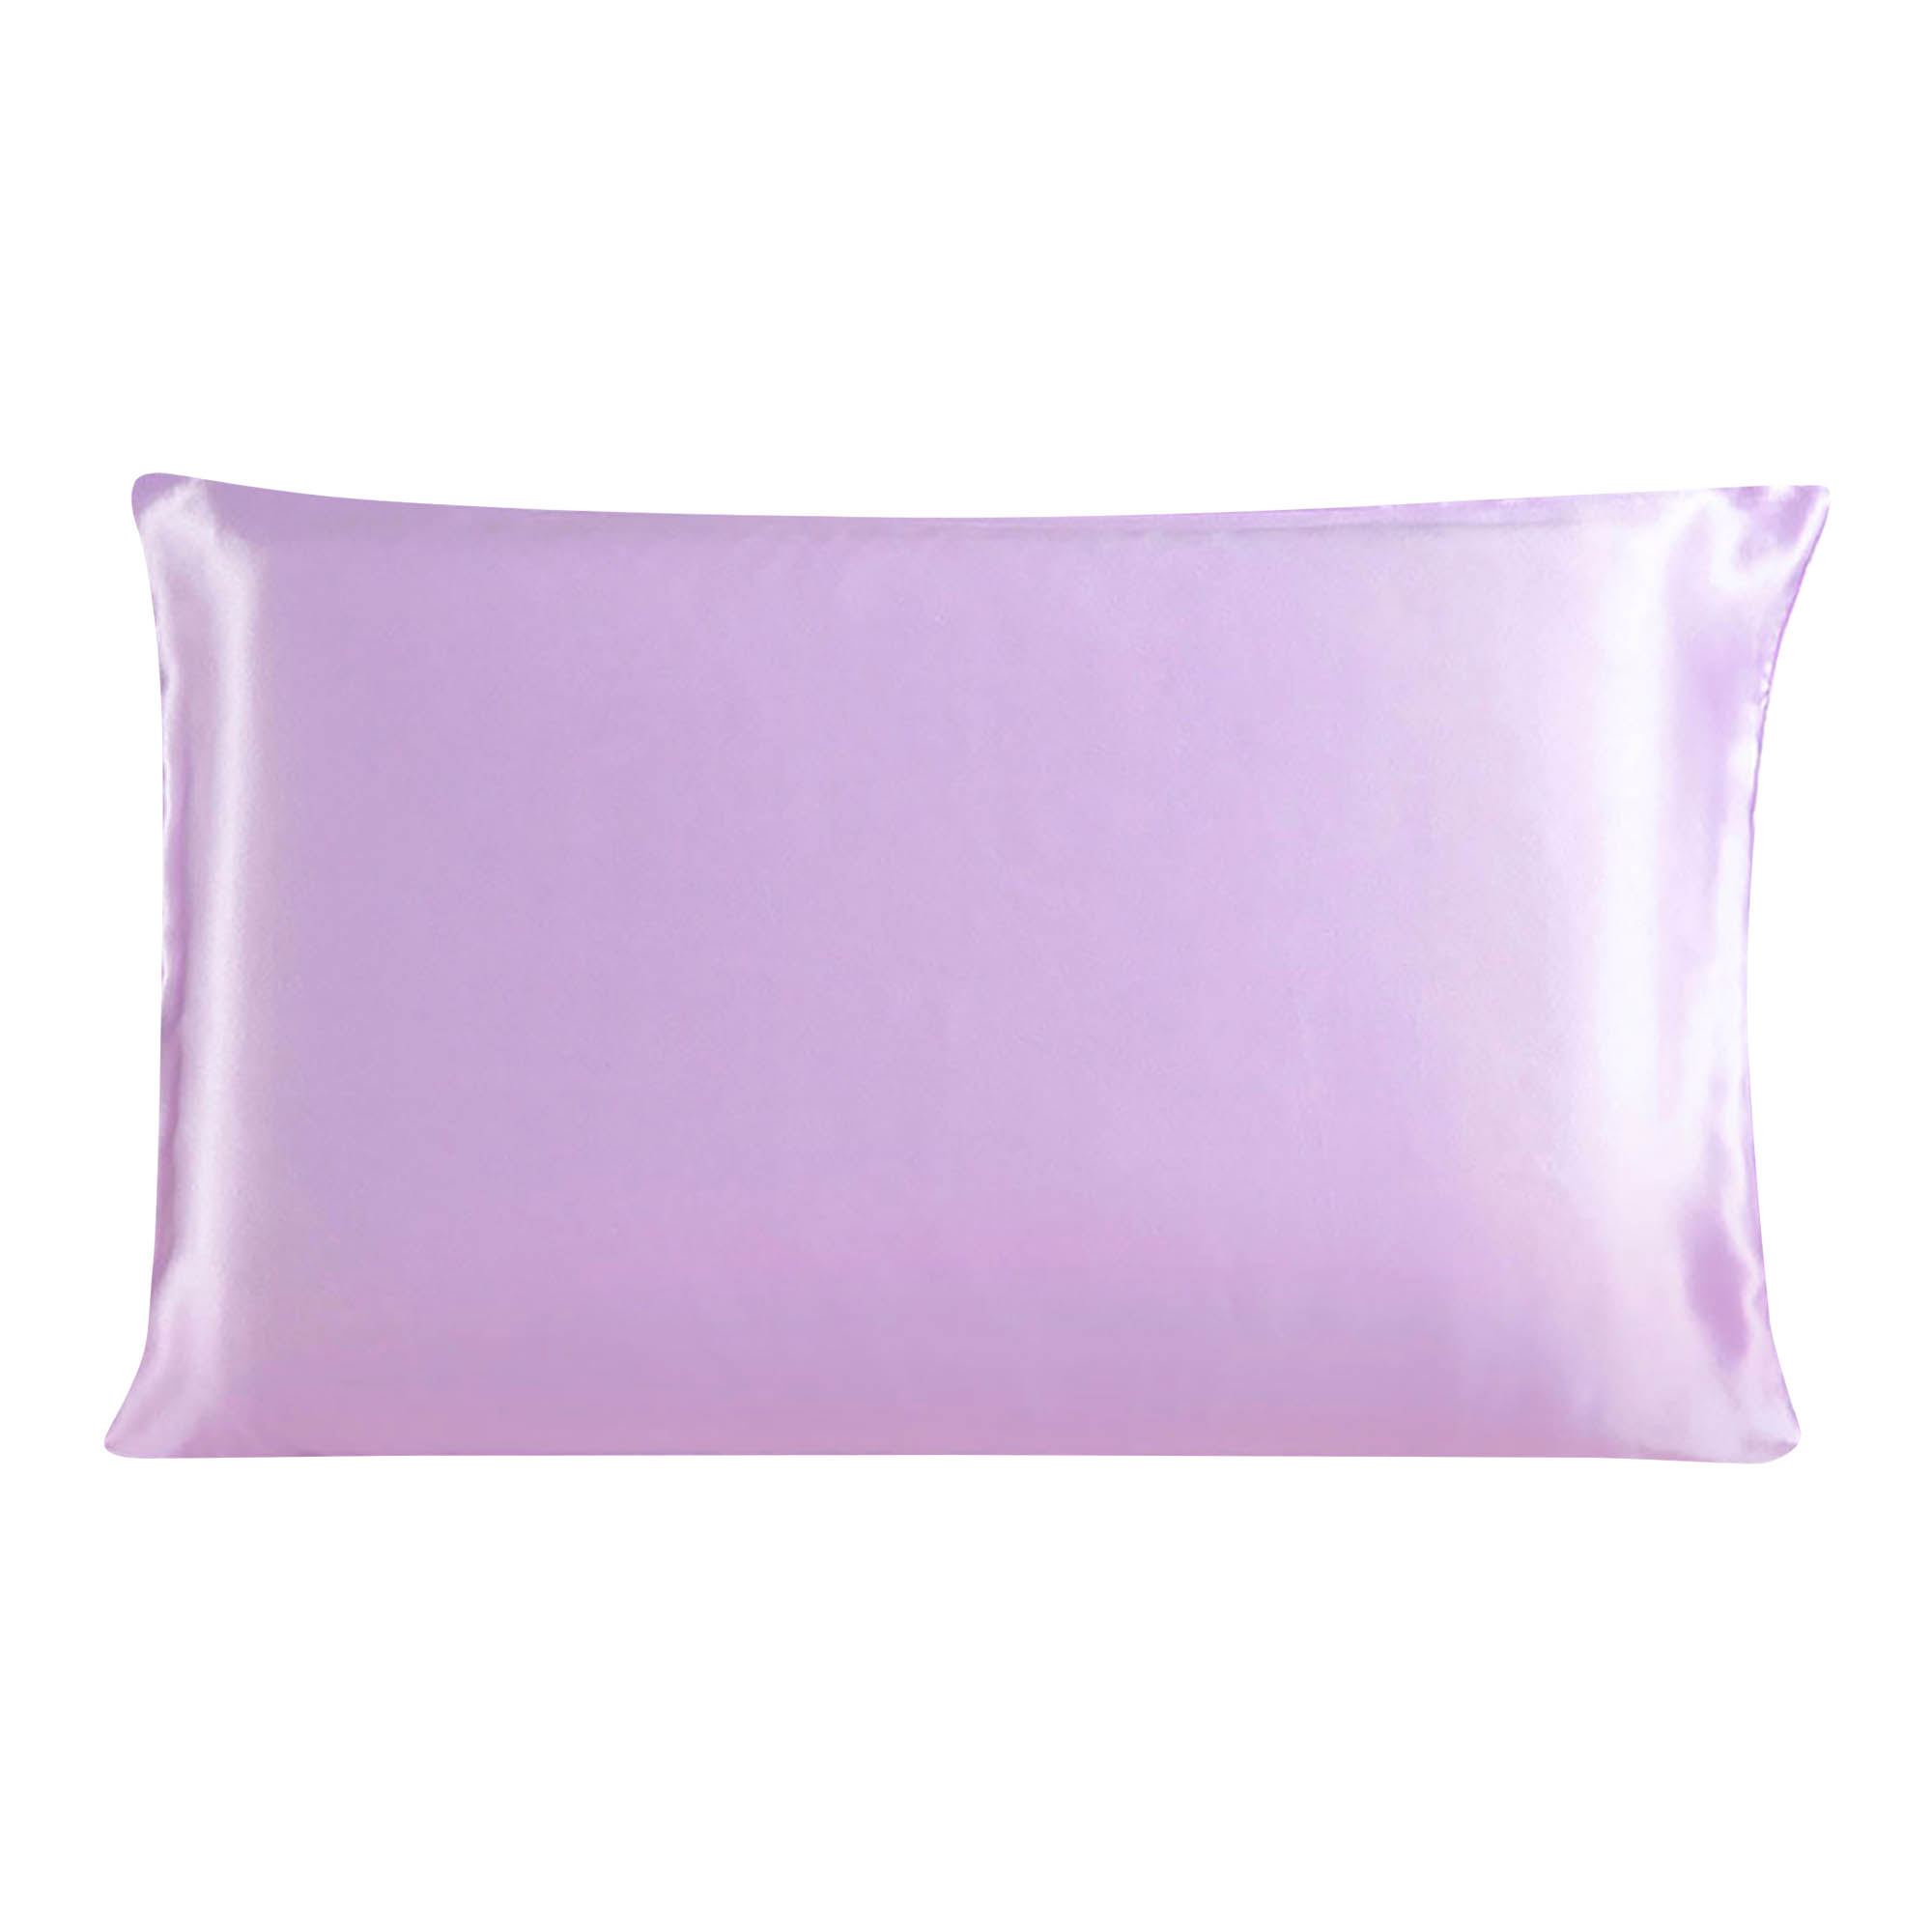 100% Mulberry Silk Fabric Pillow Case Cover Light Purple /Travel Size